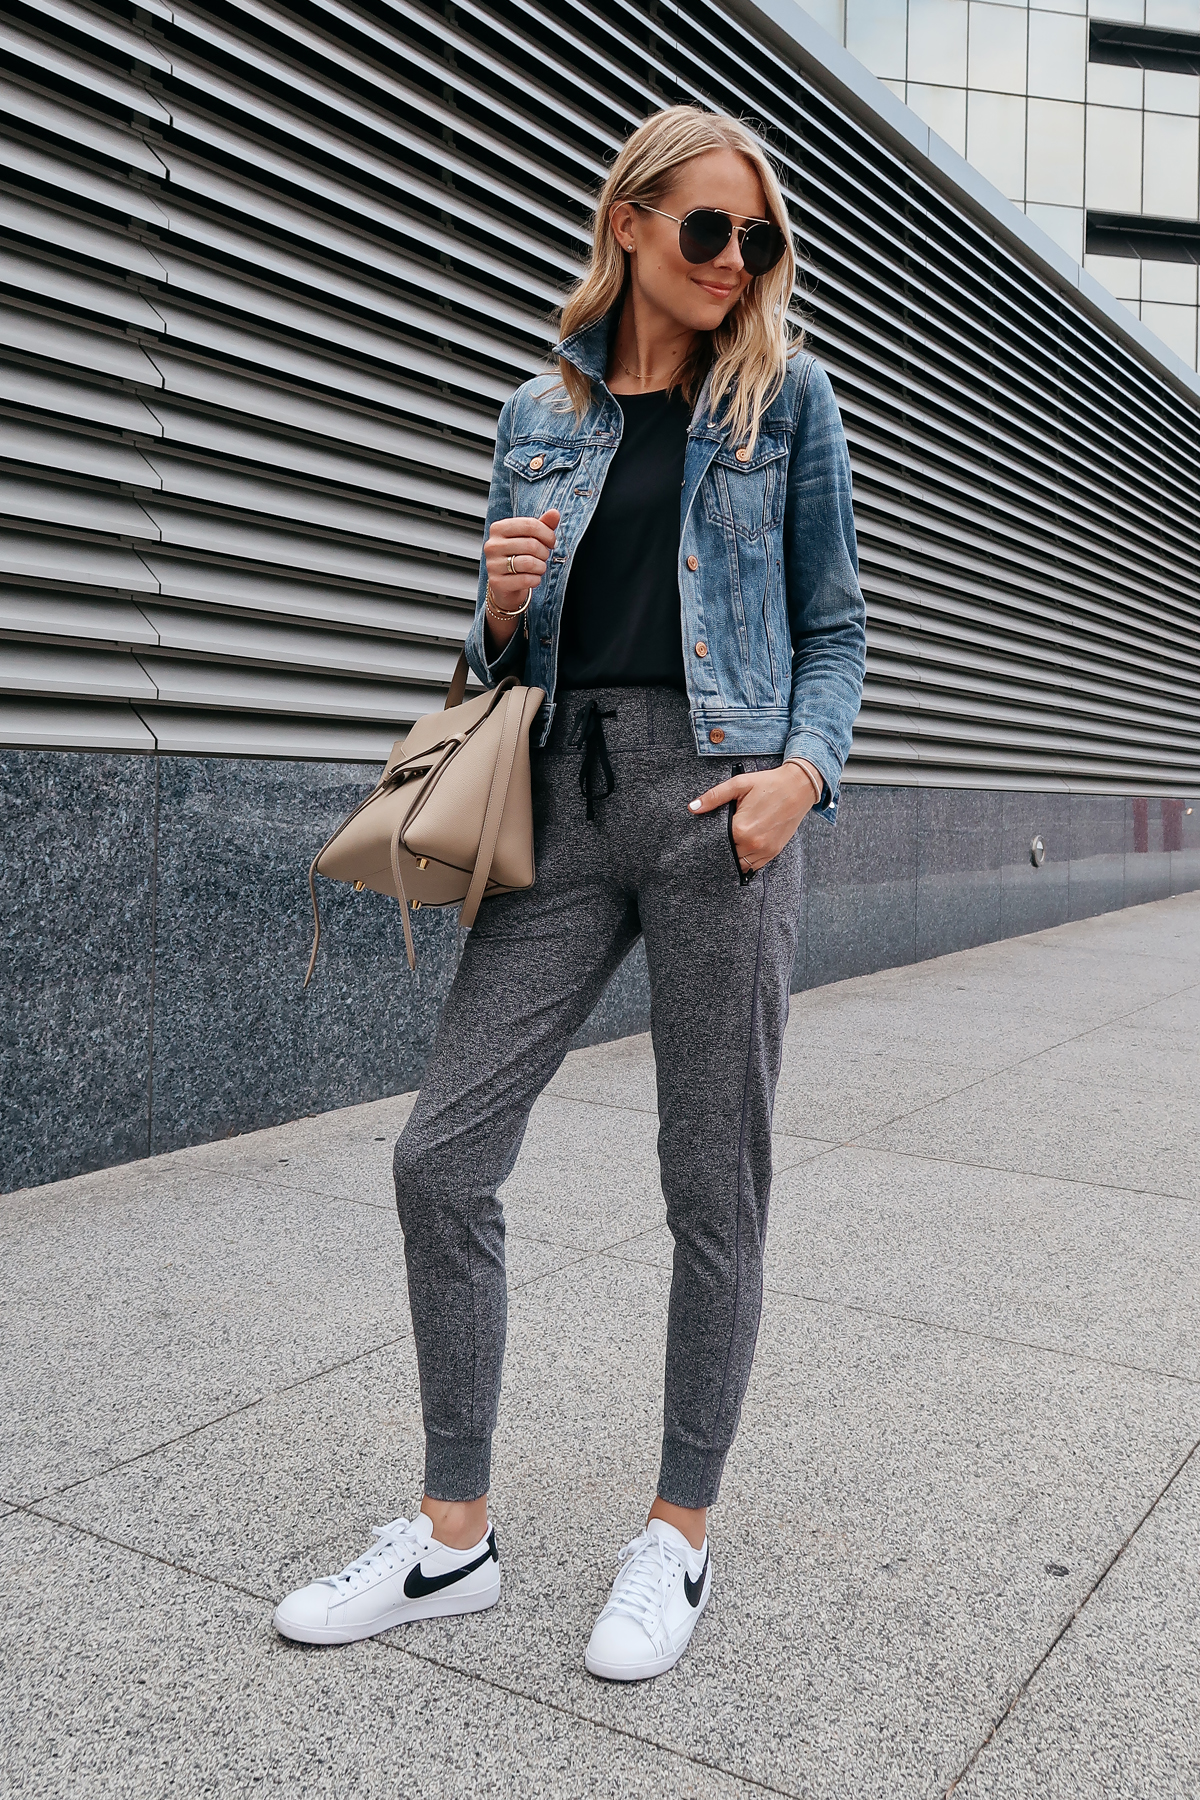 553b6896c541c Blonde Woman Wearing Jcrew Denim Jacket Black Tank Nordstrom Anniversary  Sale Grey Joggers Nike Blazer Sneakers